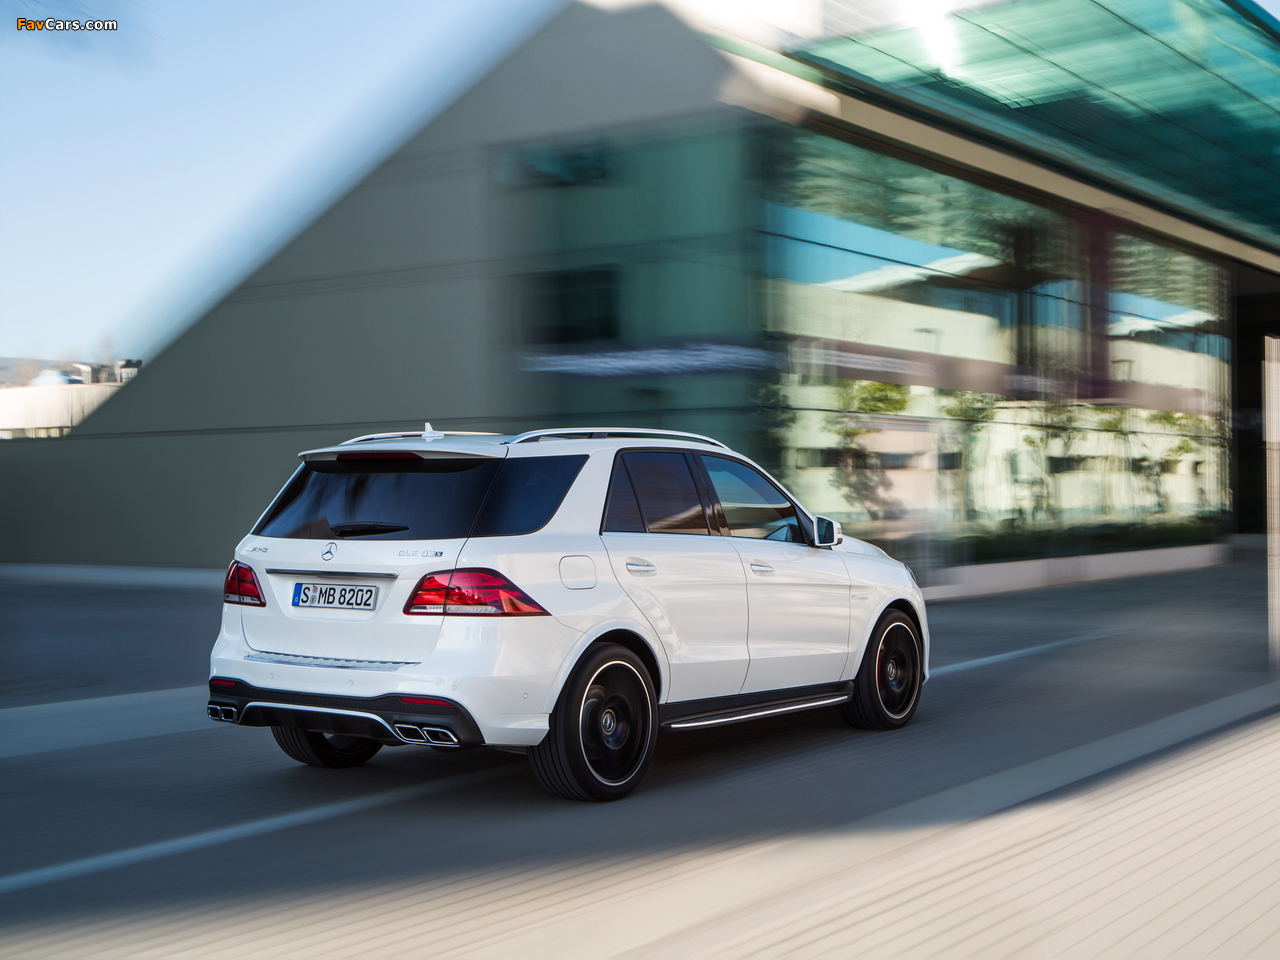 Mercedes-AMG GLE 63 S 4MATIC (W166) 2015 wallpapers (1280 x 960)